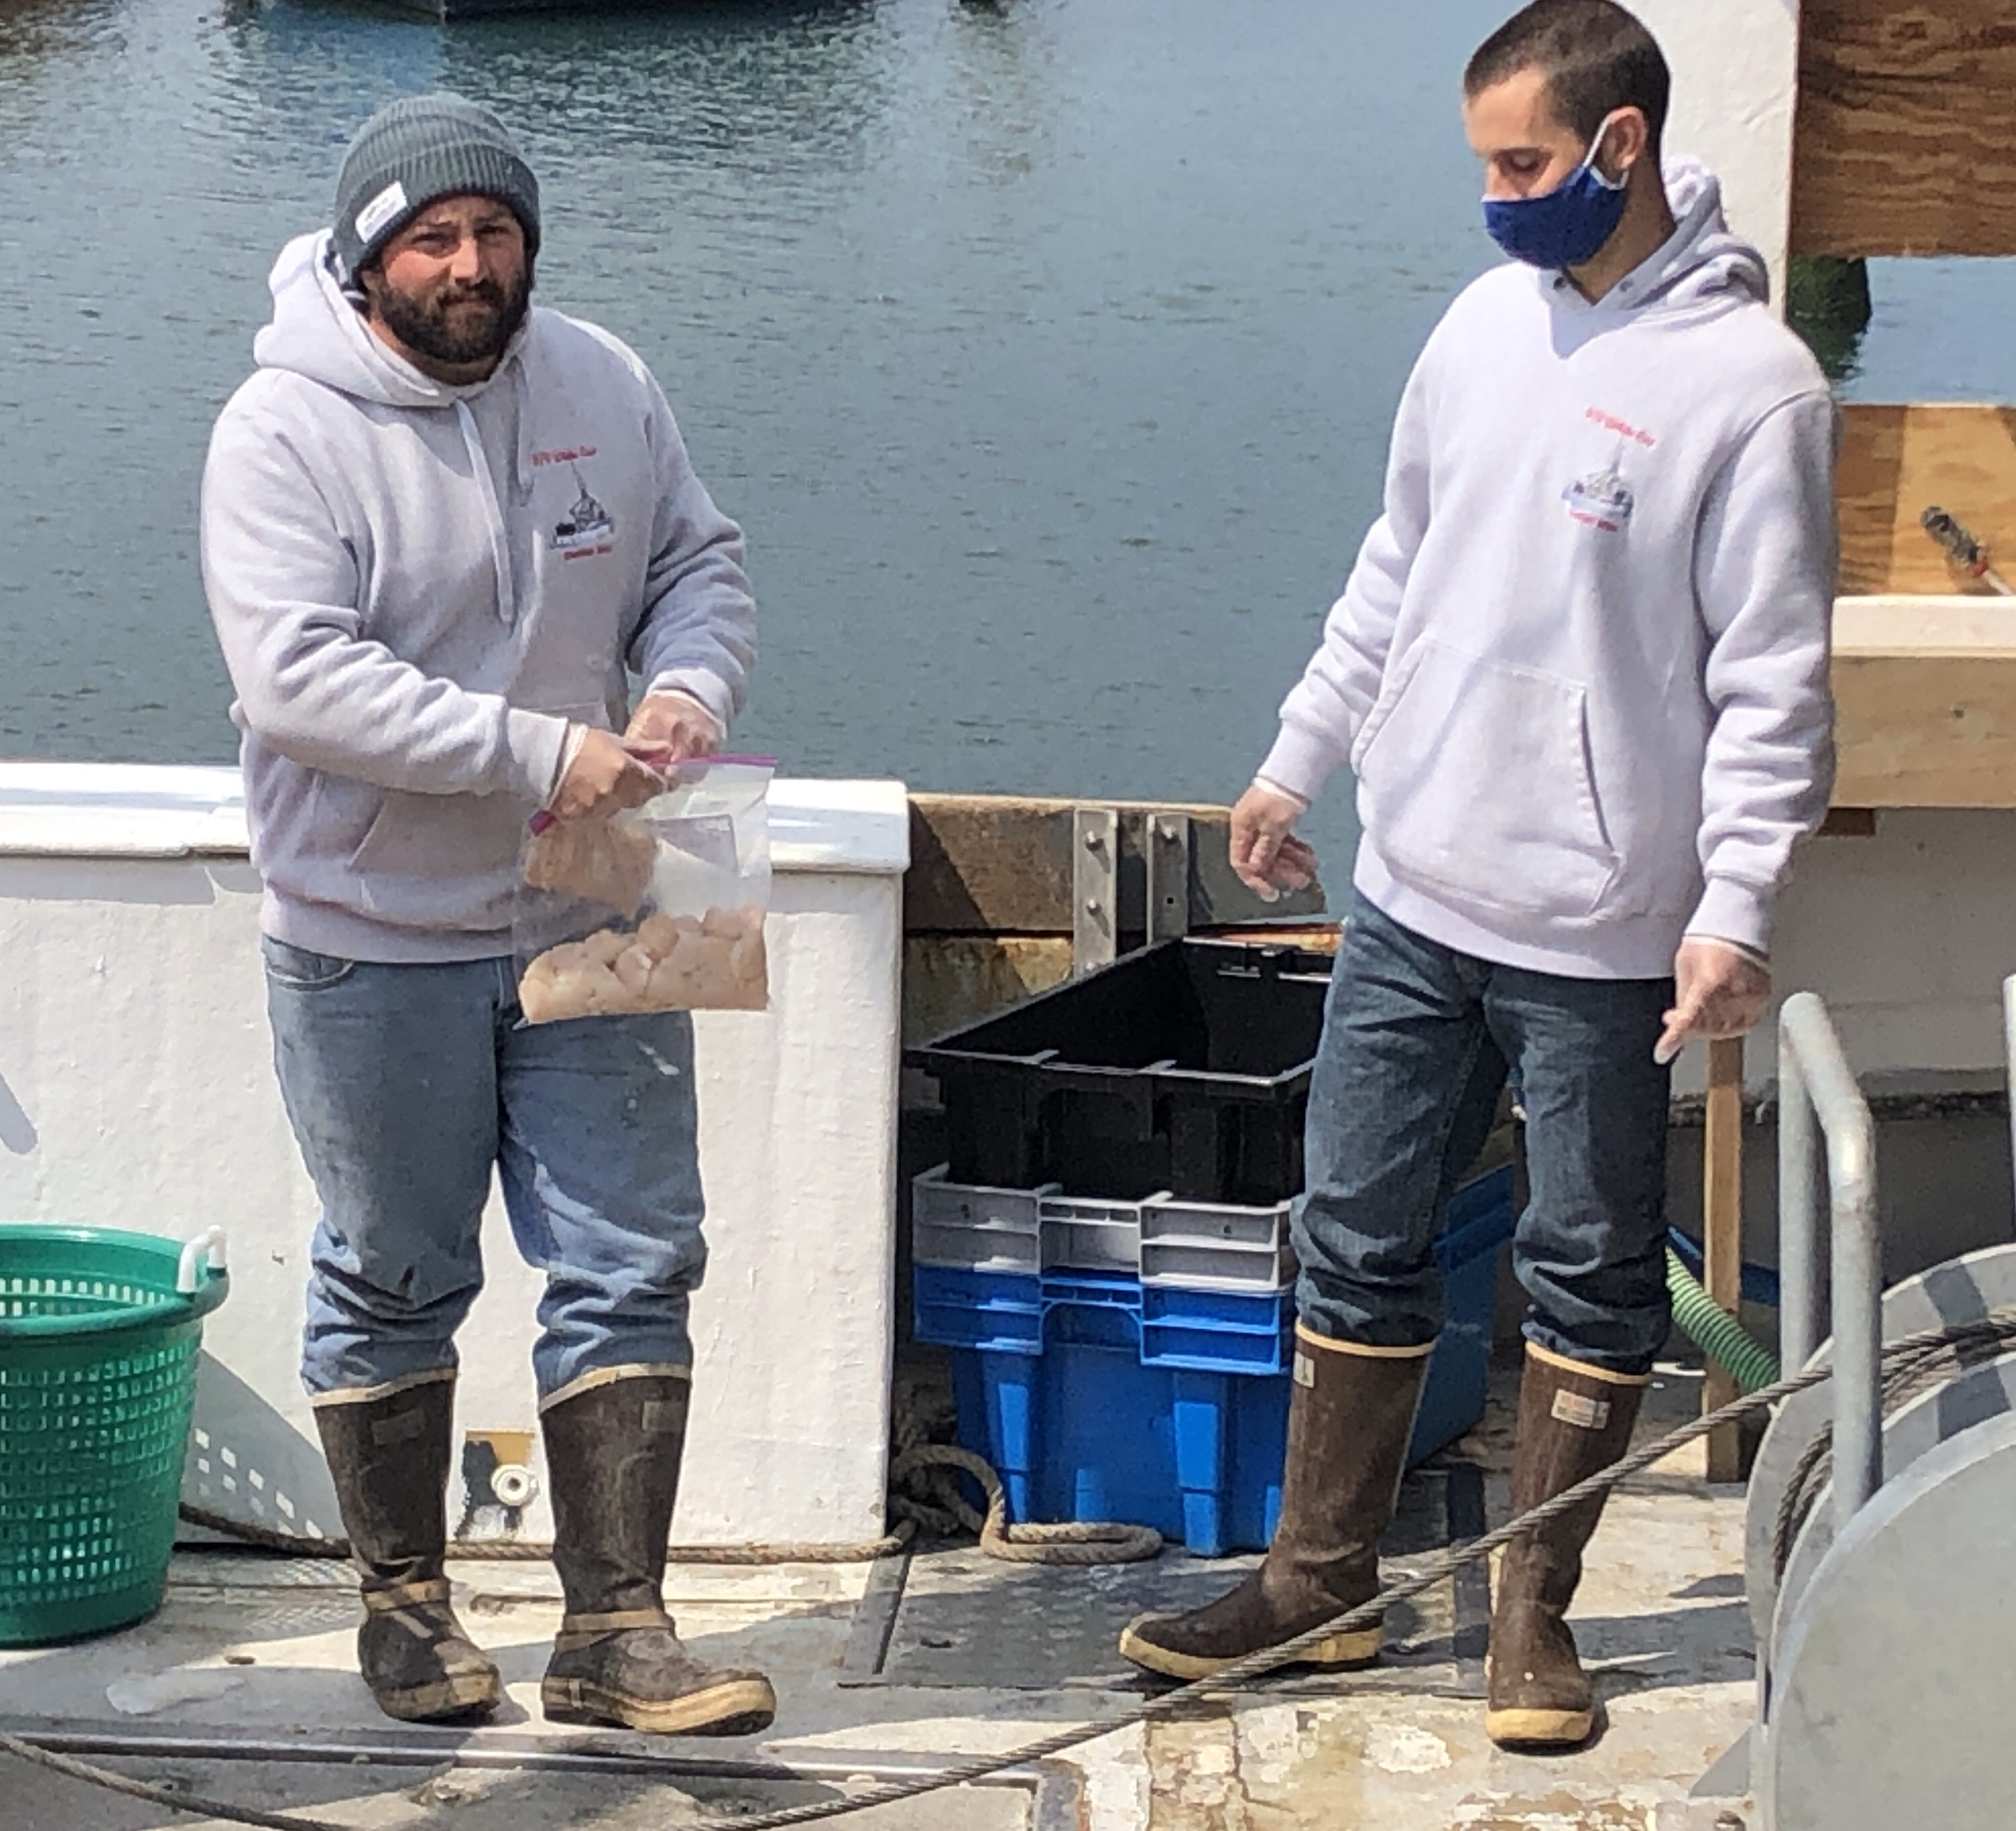 Shutdown May Have Silver Lining For Commercial Fishing Industry